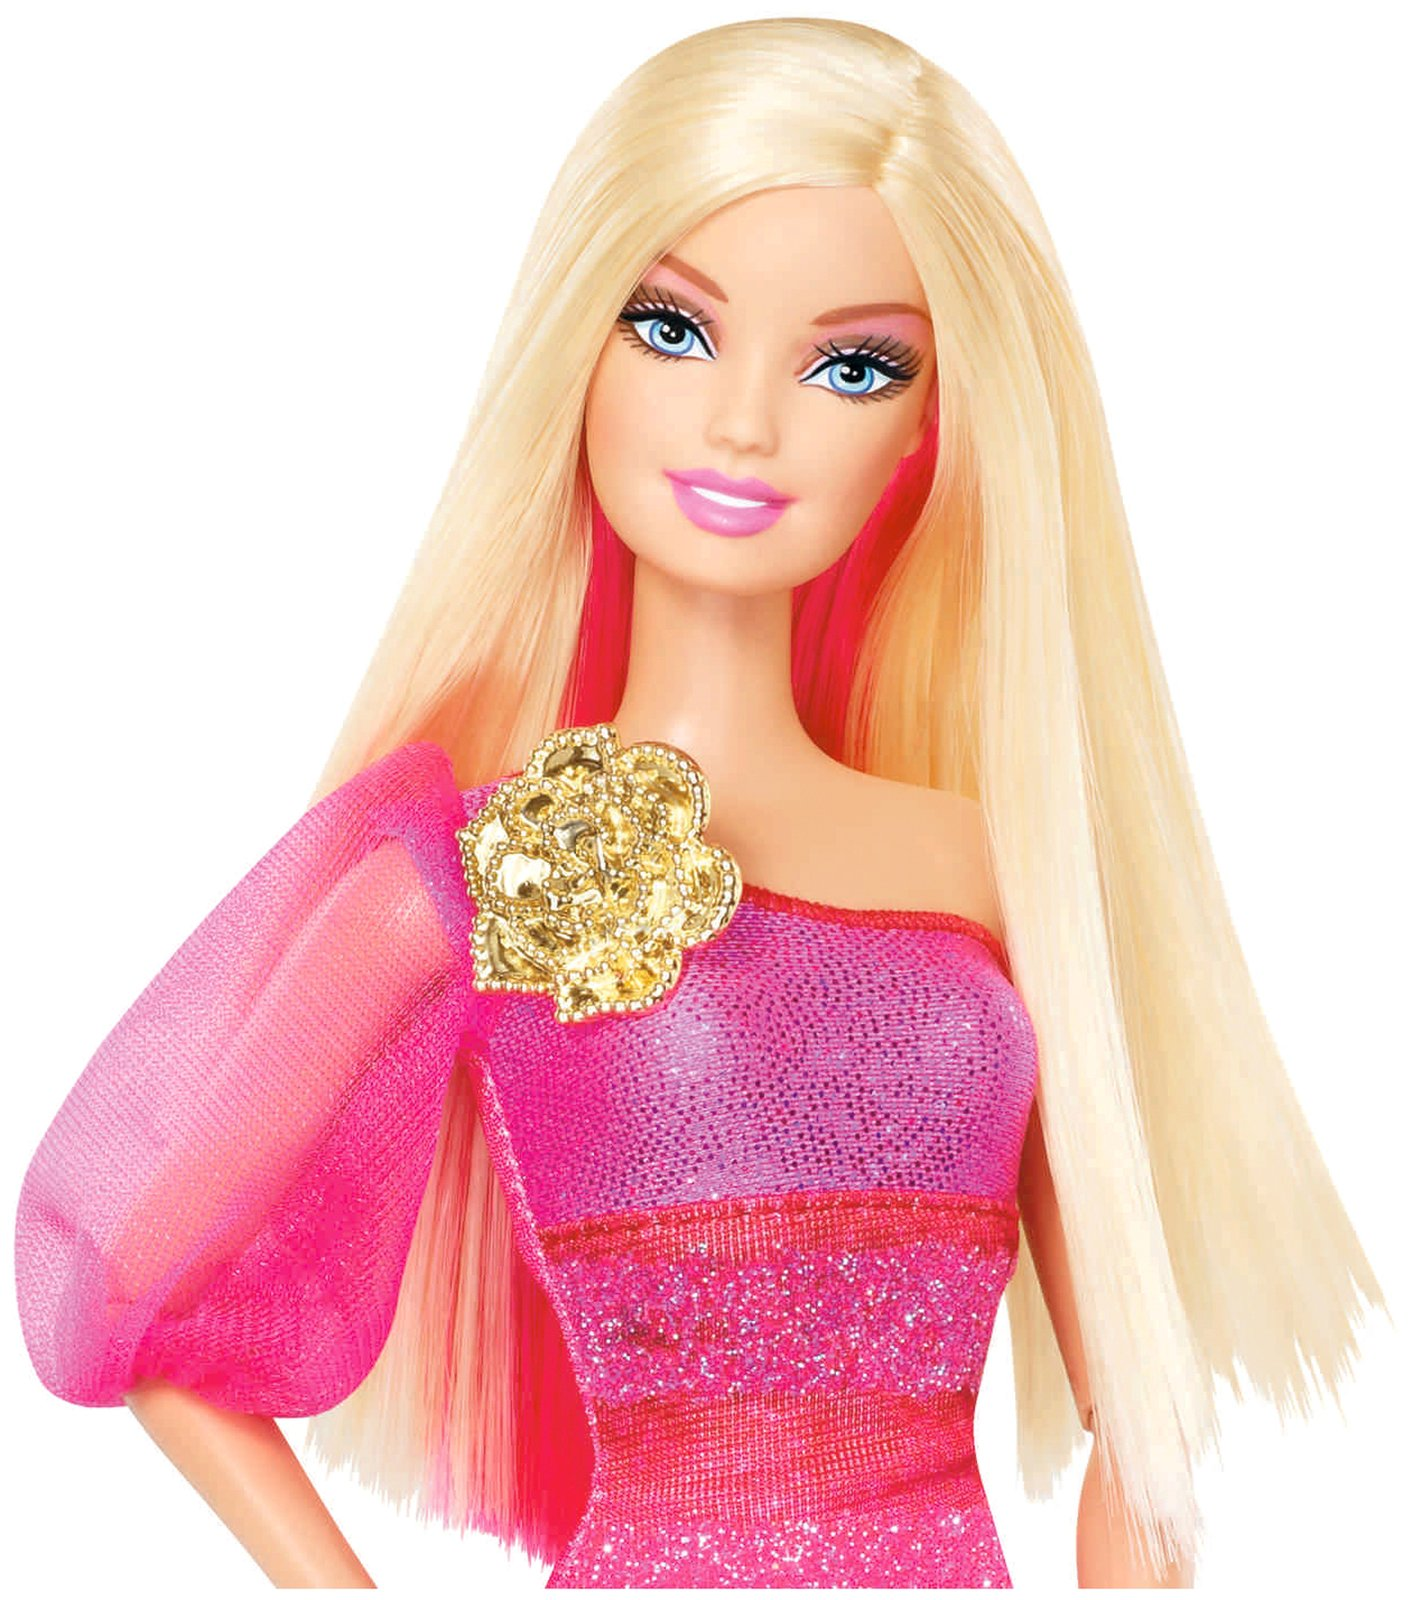 Barbie doll hd wallpapers free download - Barbie pictures download free ...